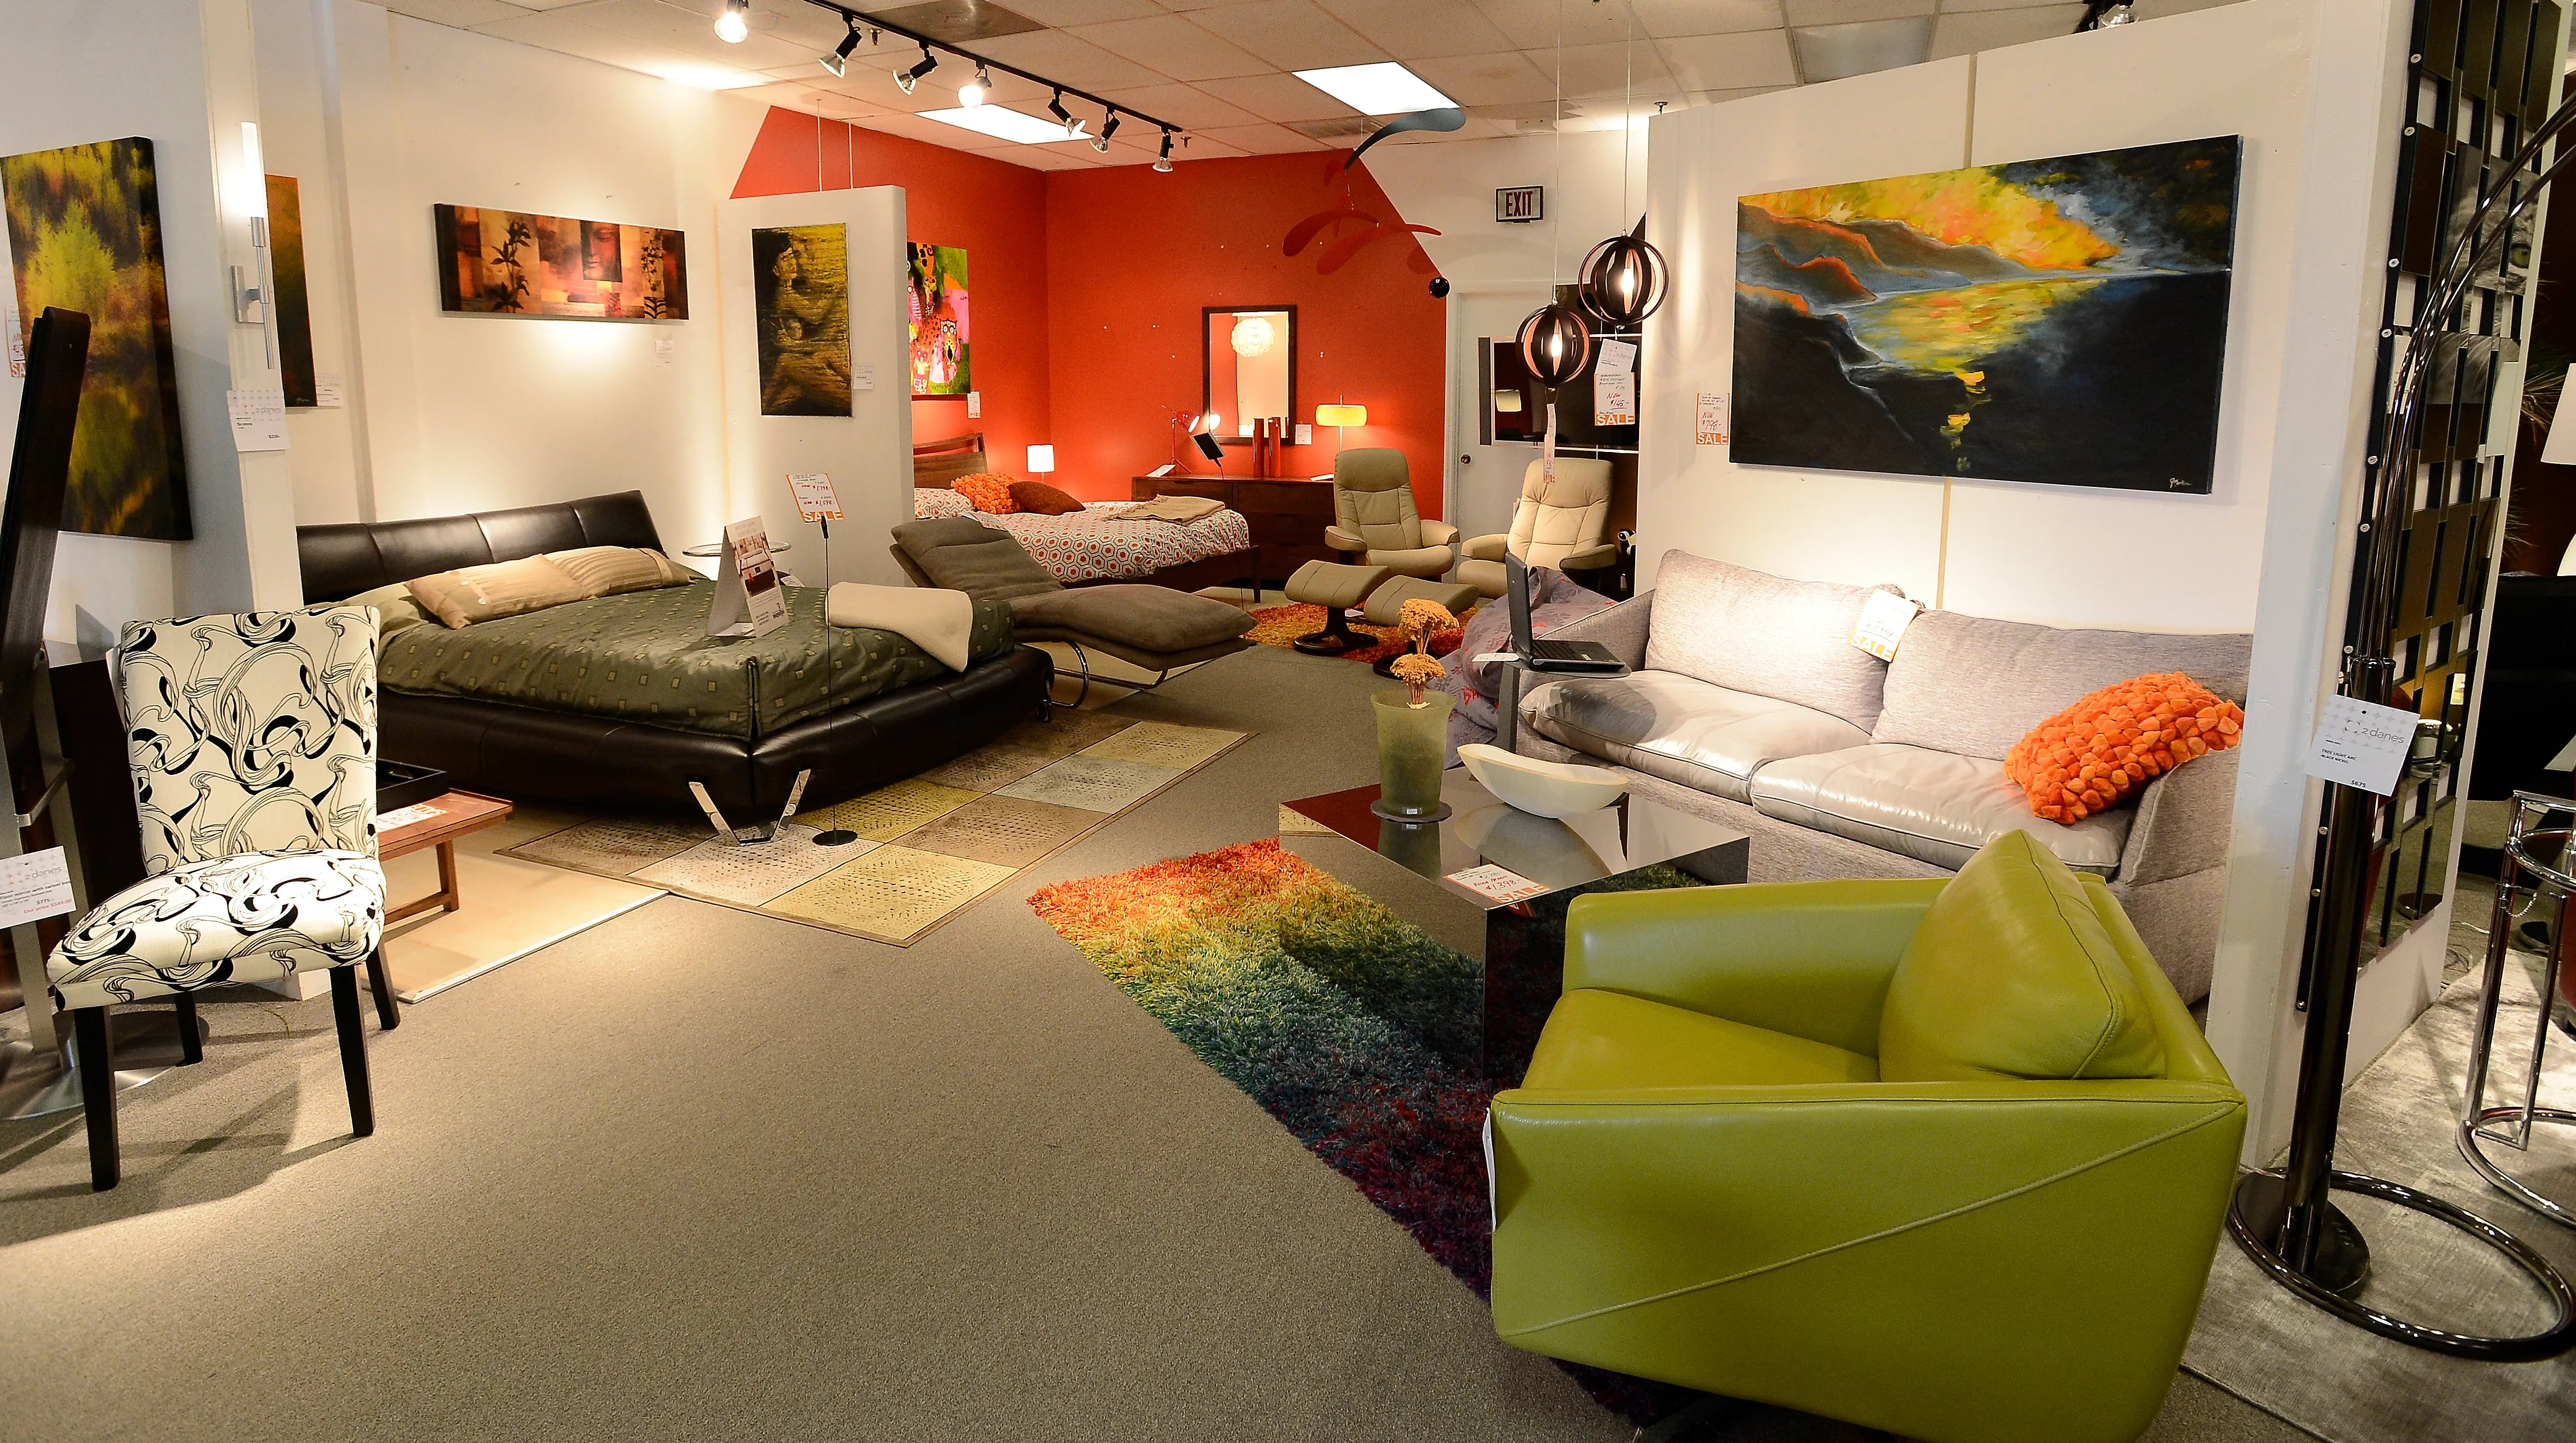 10 Fabulous Nashville Area Furniture Stores To Help You